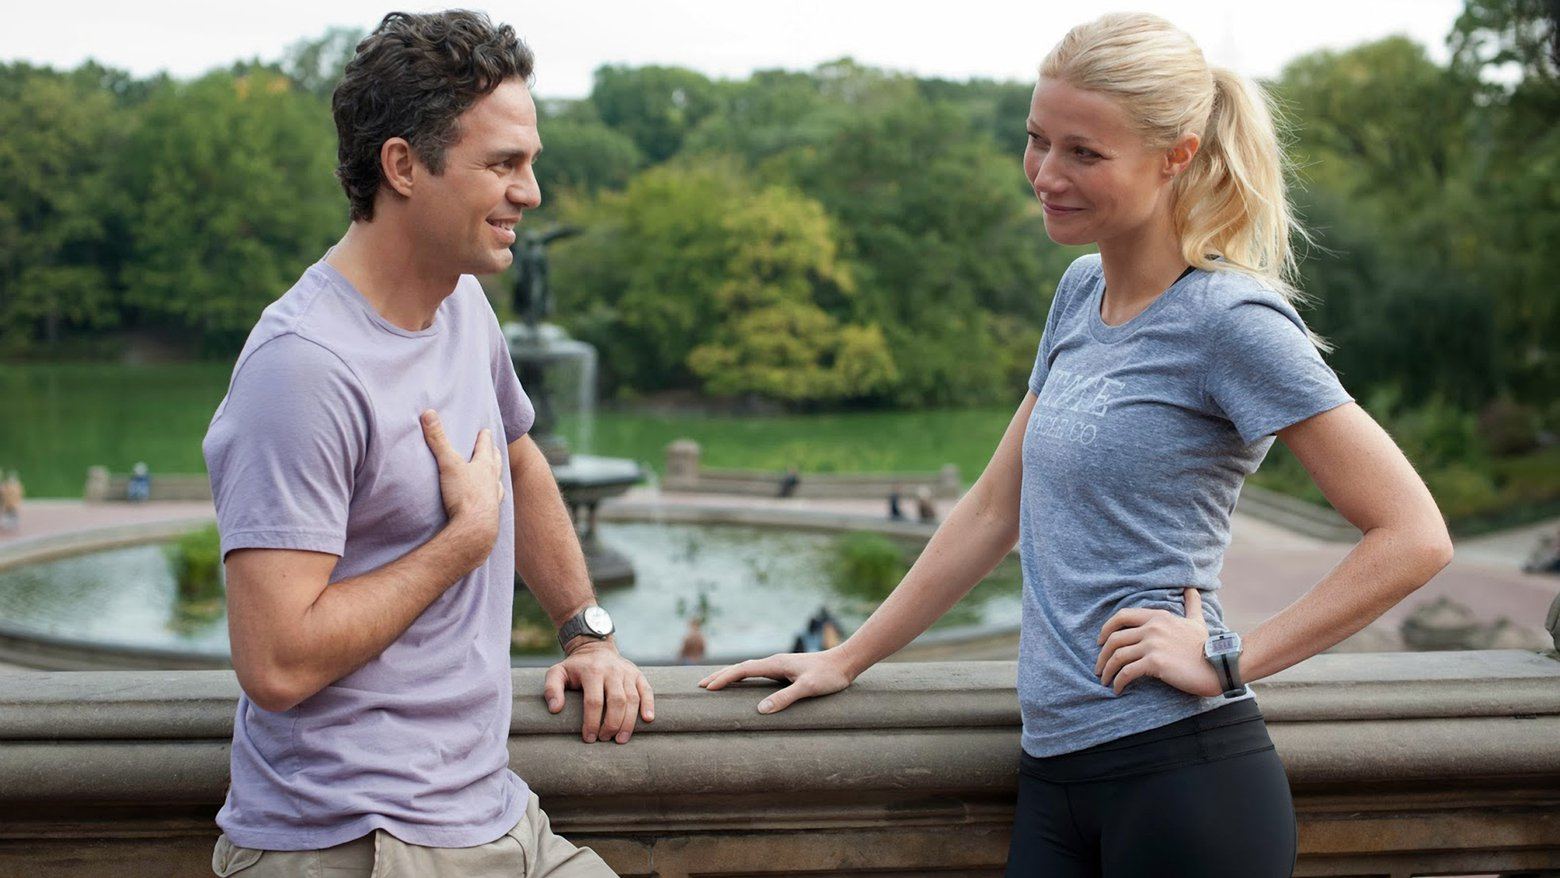 terapia-do-sexo-thanks-for-sharing-gwyneth-paltrow-mark-ruffalo-01